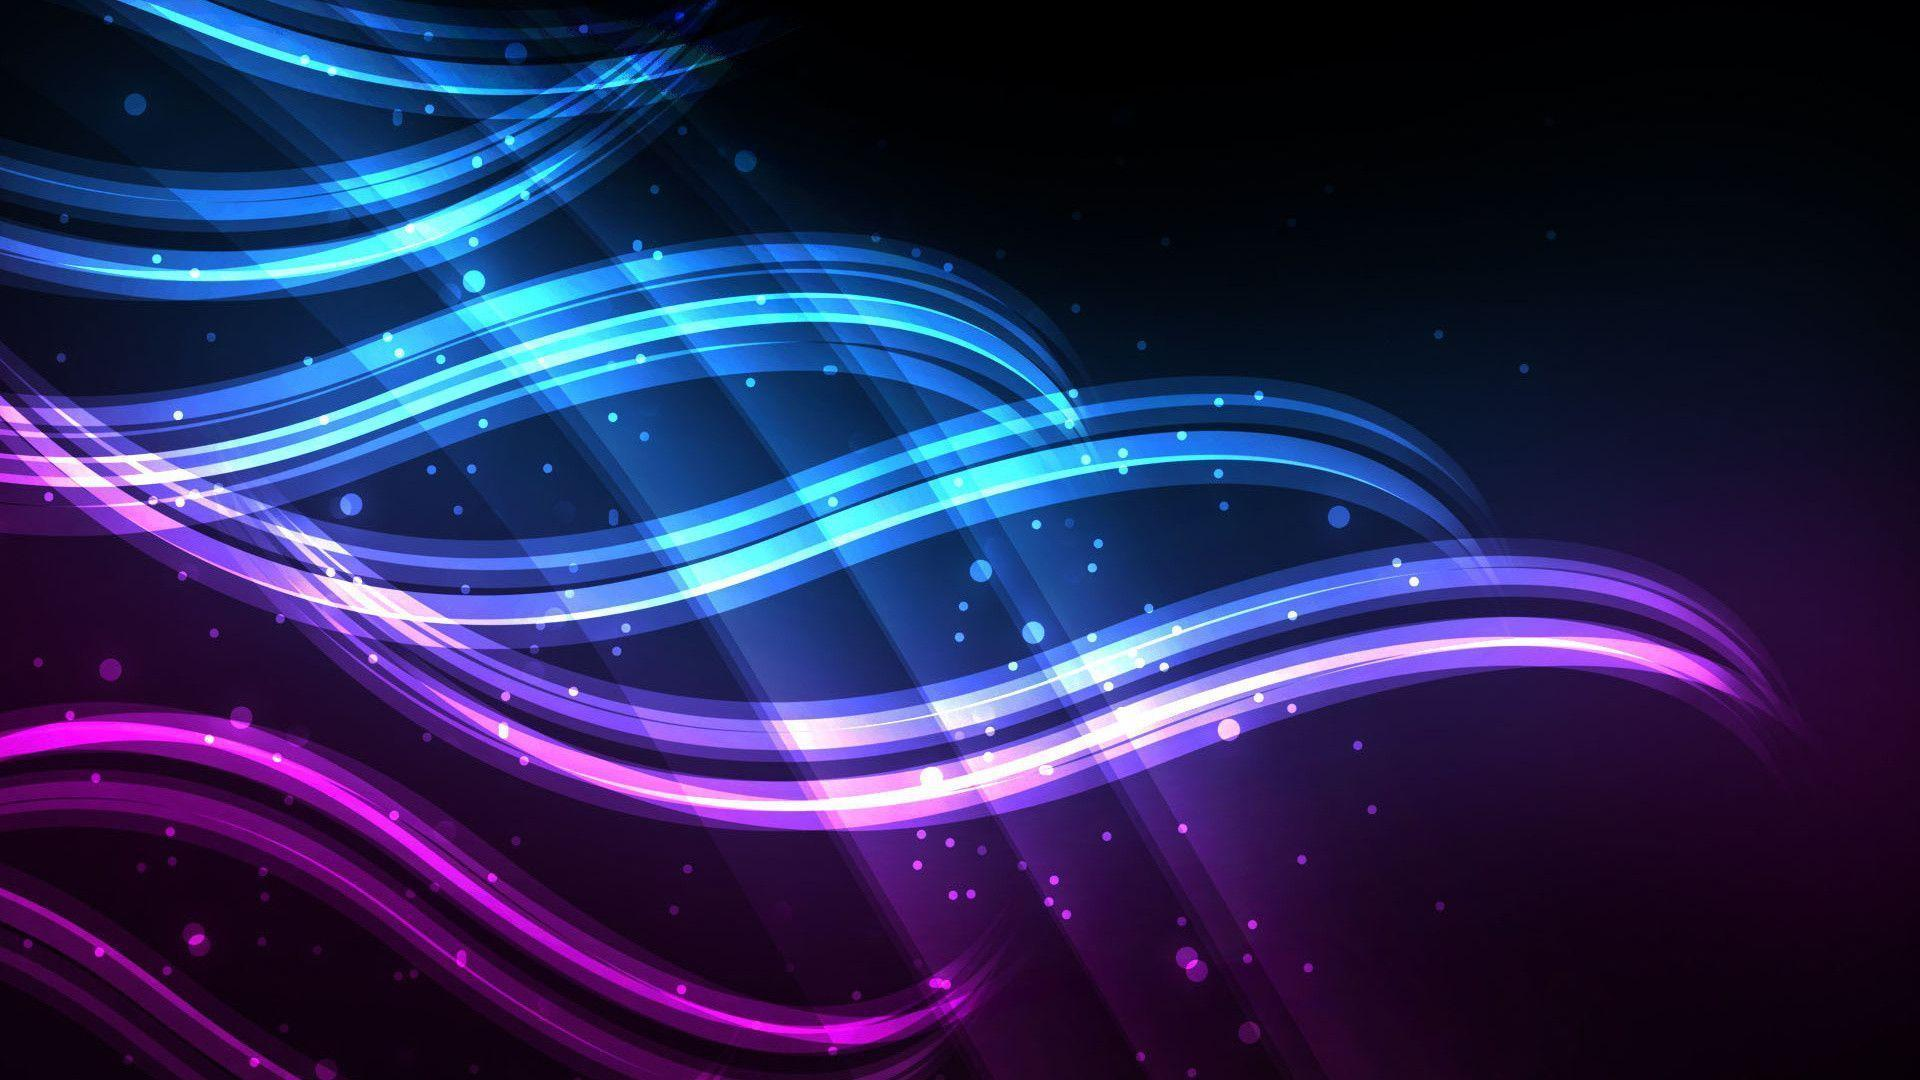 abstract 3d wallpaper 1920x1080 - photo #40